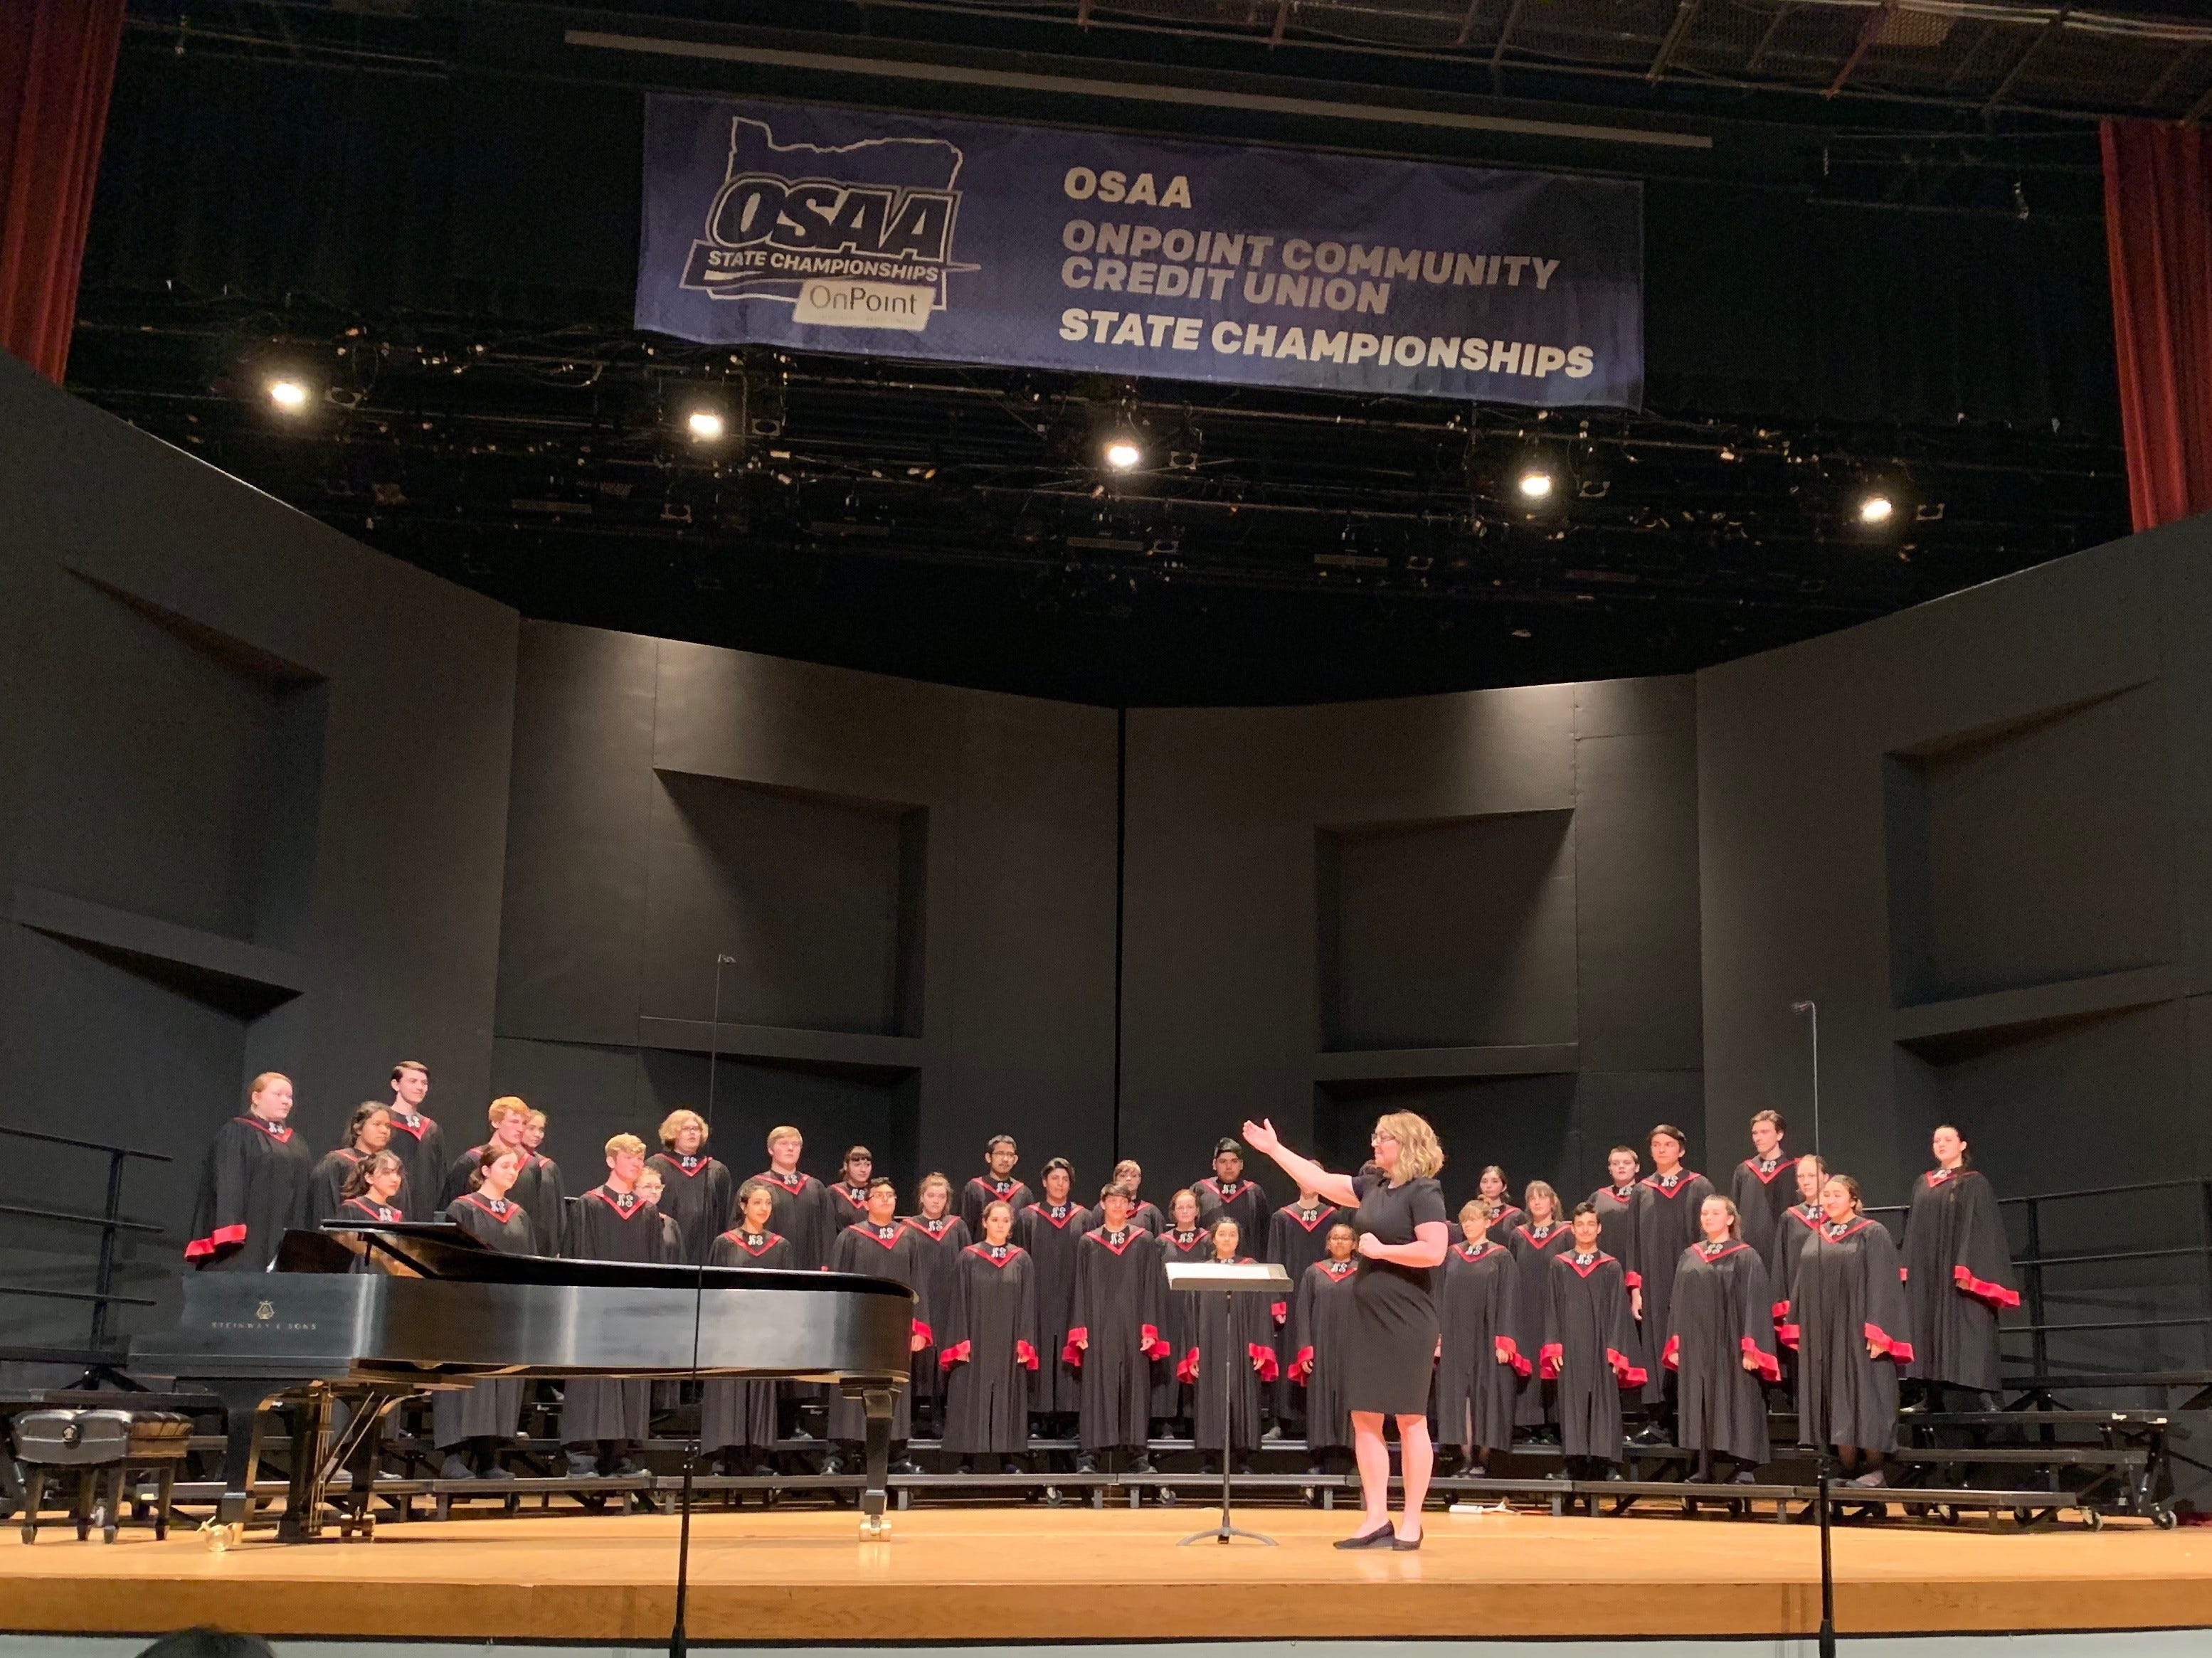 North Salem High School's choir, under the direction of Jennifer Kercher, perform at the OSAA Choir State Championships at Oregon State University in Corvallis on April 30, 2019.